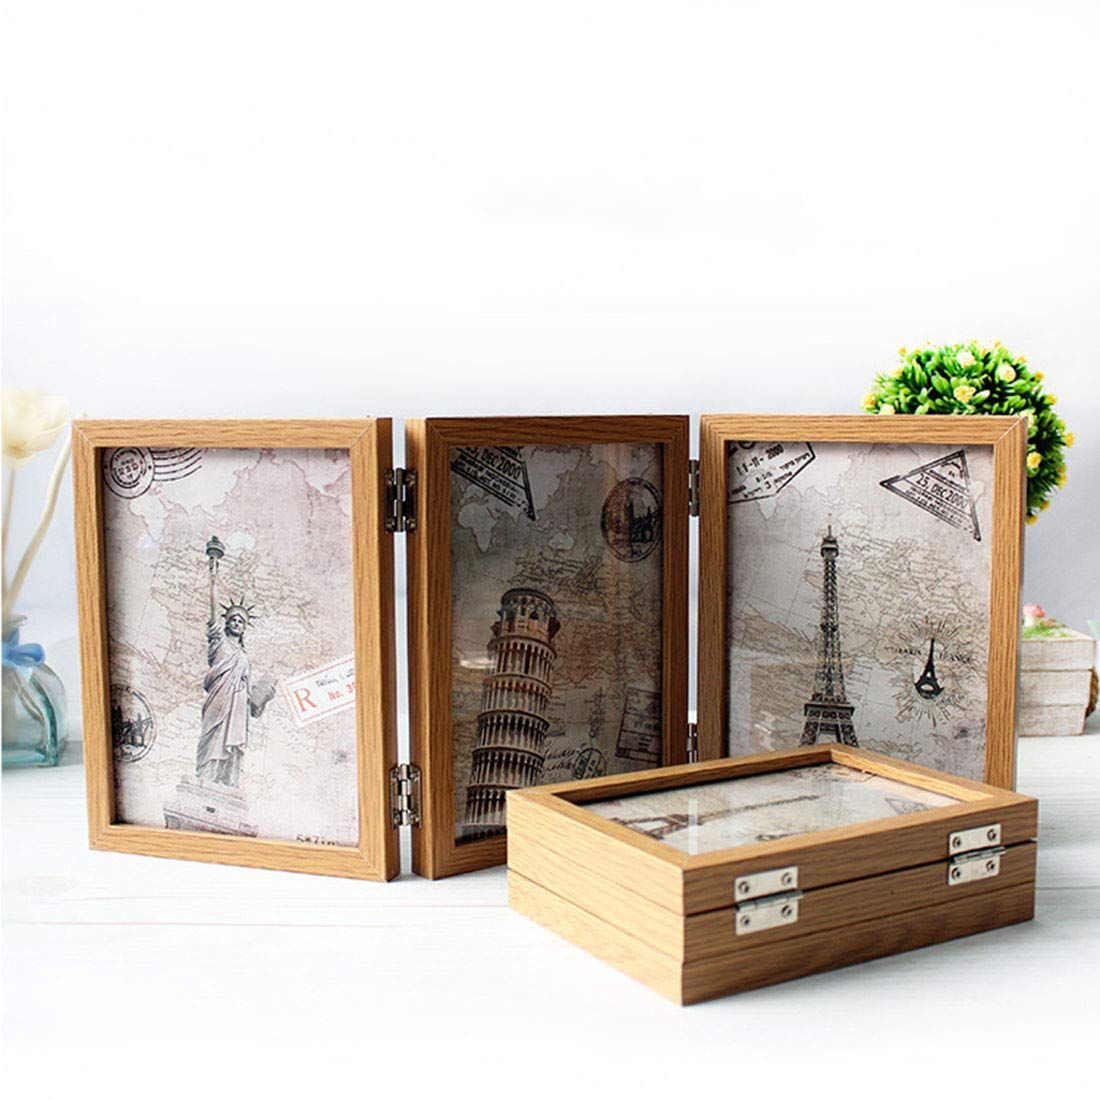 Bverionant Wood Folding Photo Frame Hinged Picture Frame on Desk Table Top #1 S